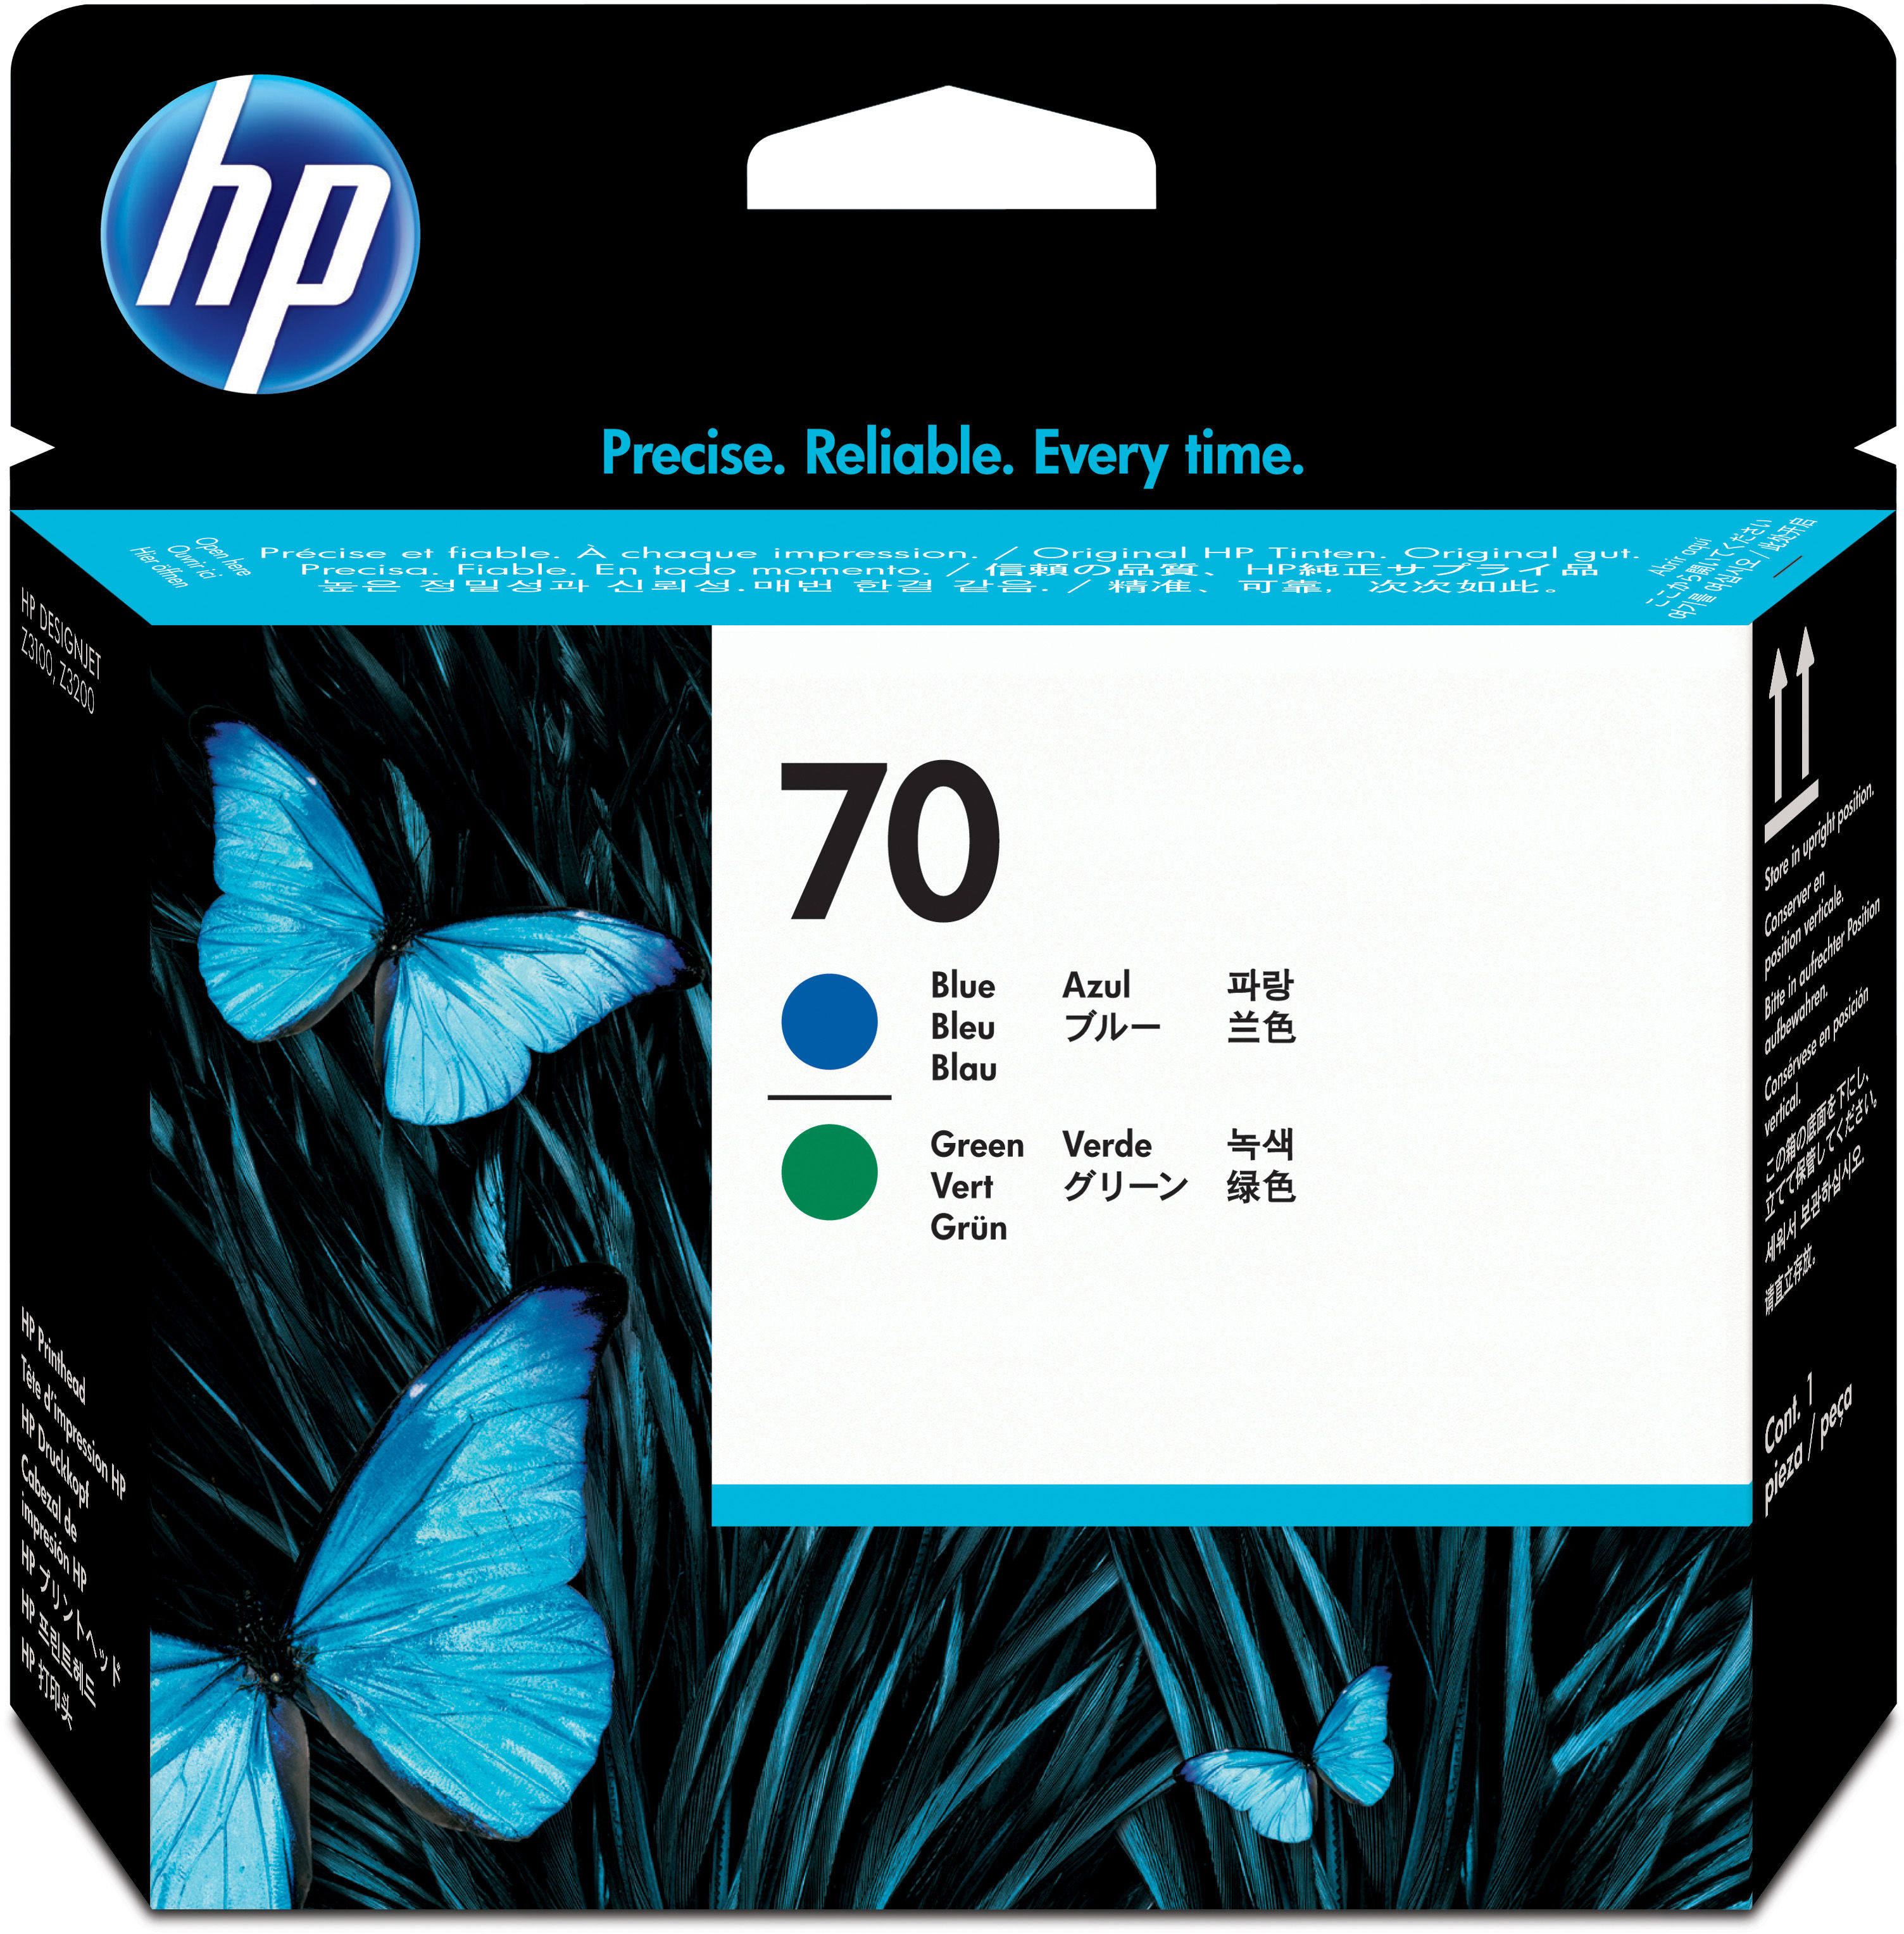 HP 70 Blue and Green Printhead Use in selected HP DesignJet printers